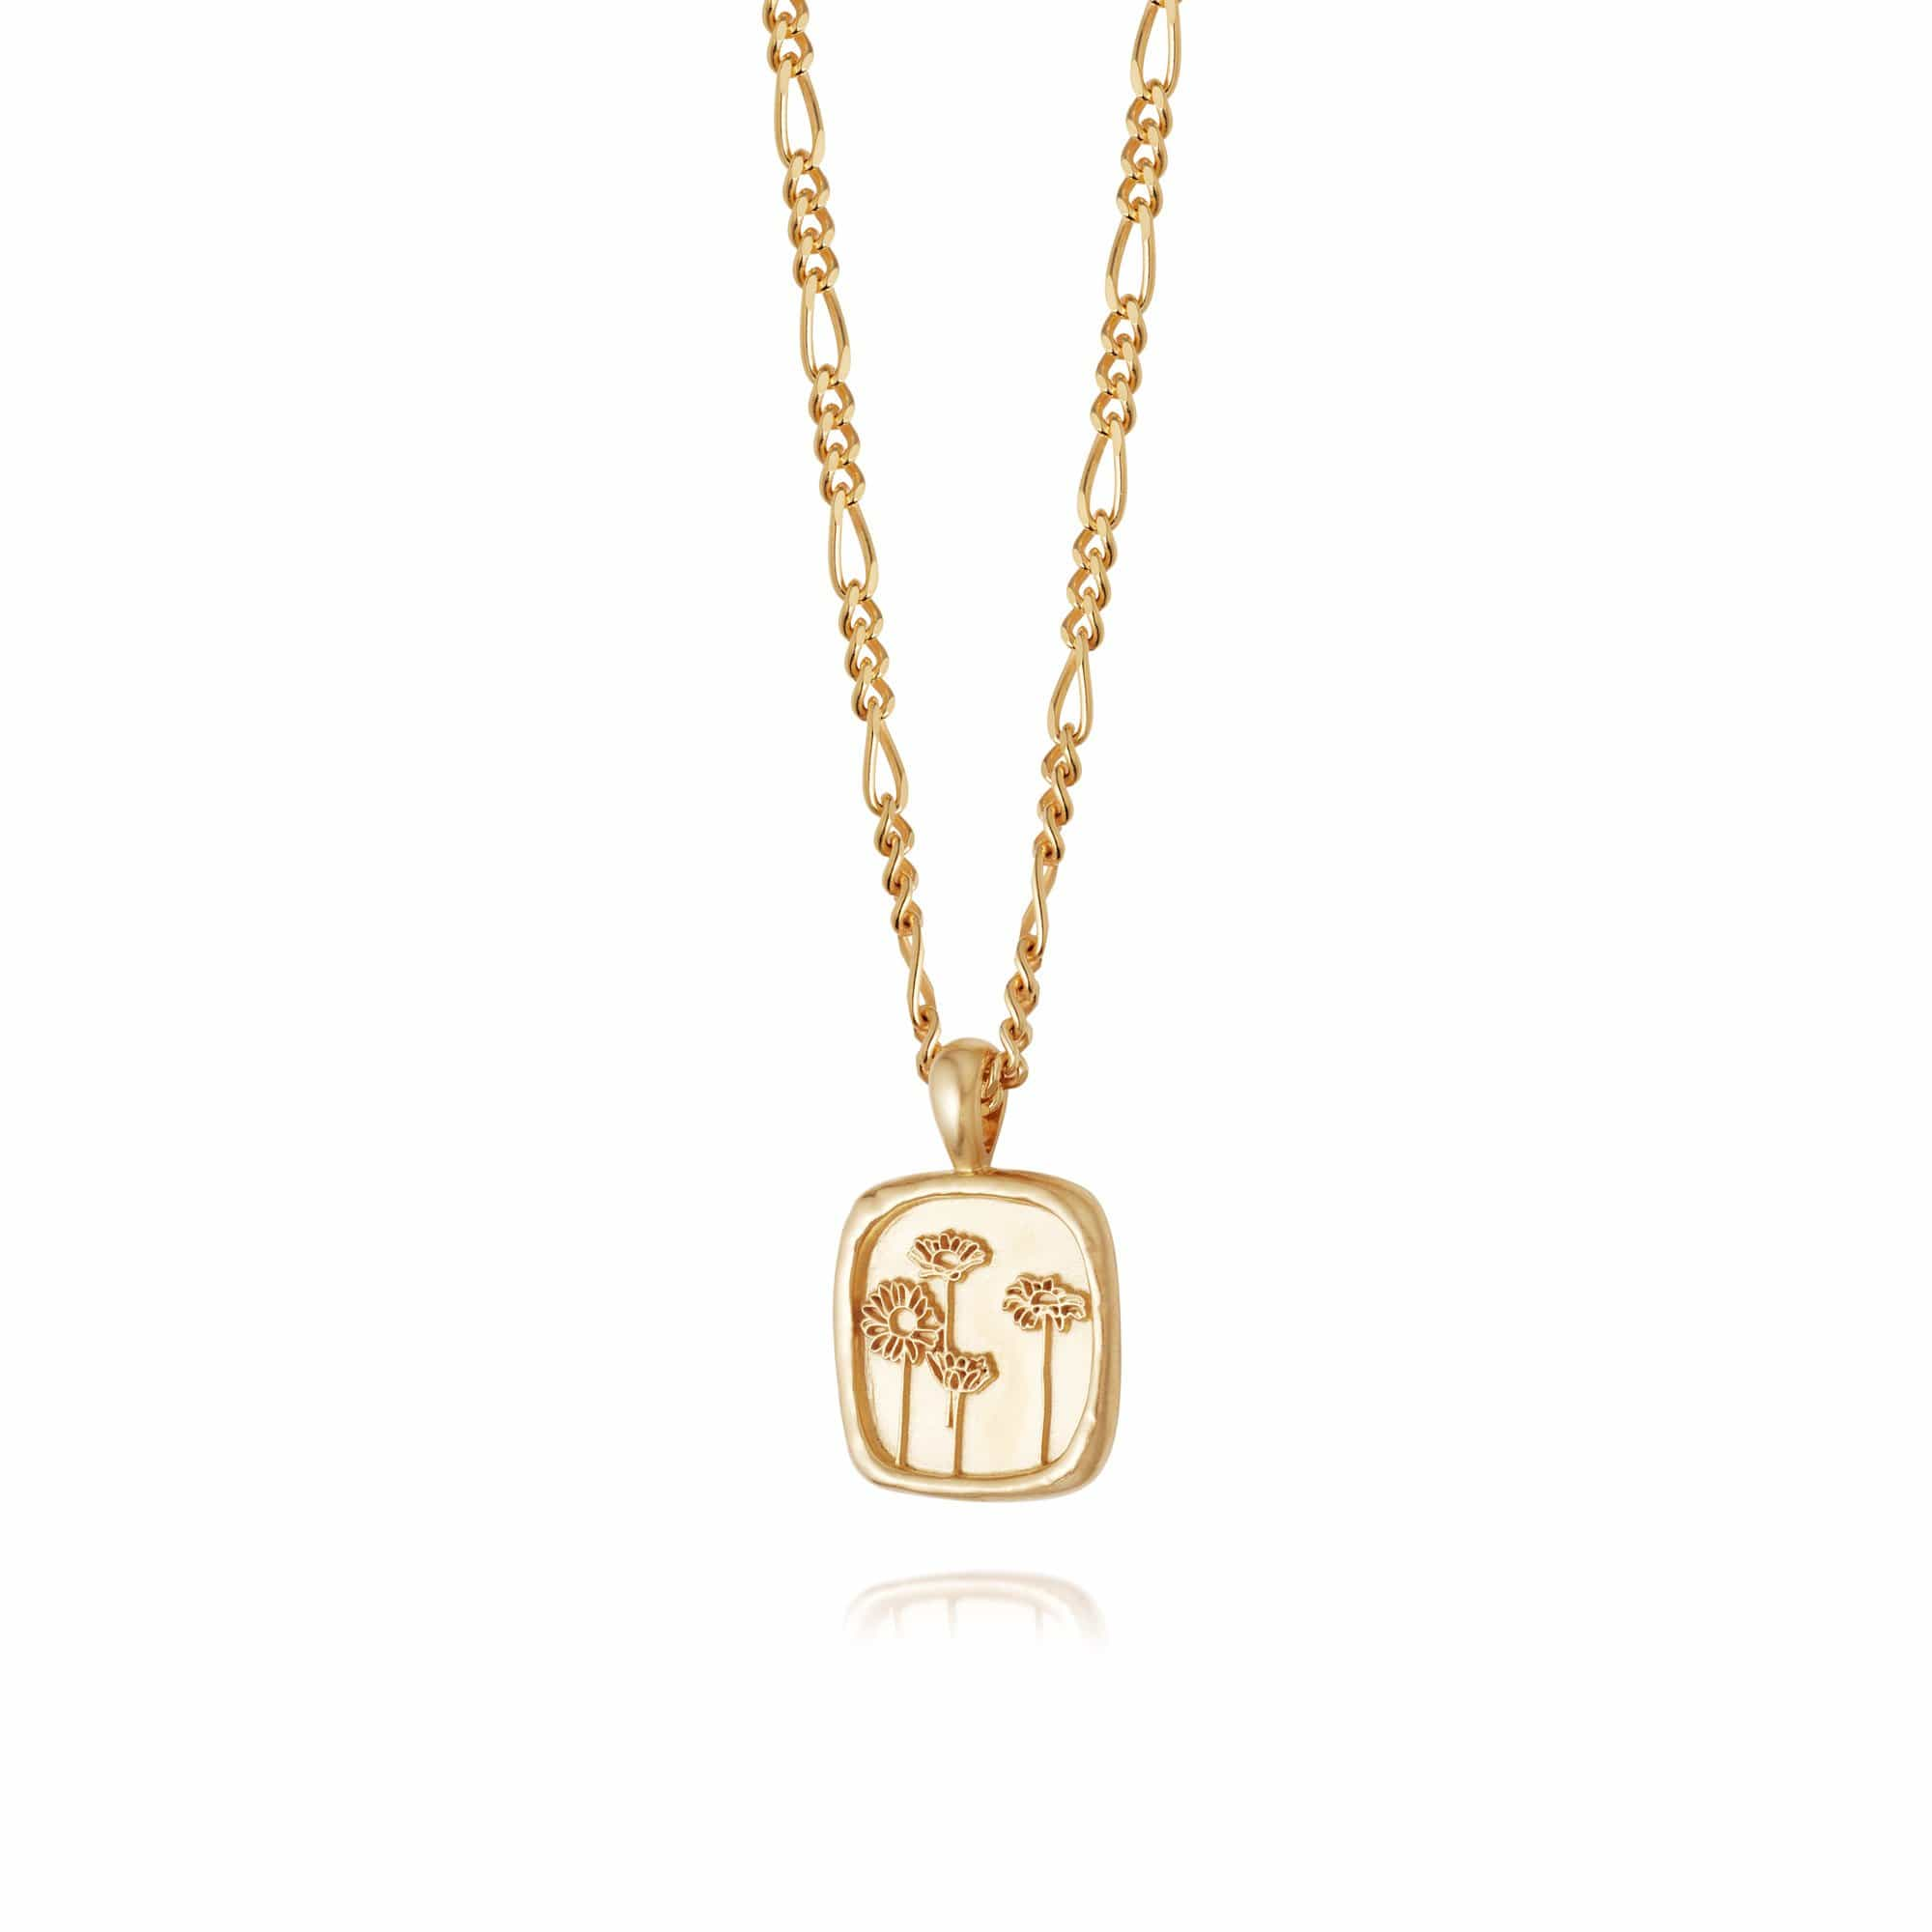 WILD DAISIES FLOWER NECKLACE - 18CT GOLD PLATE